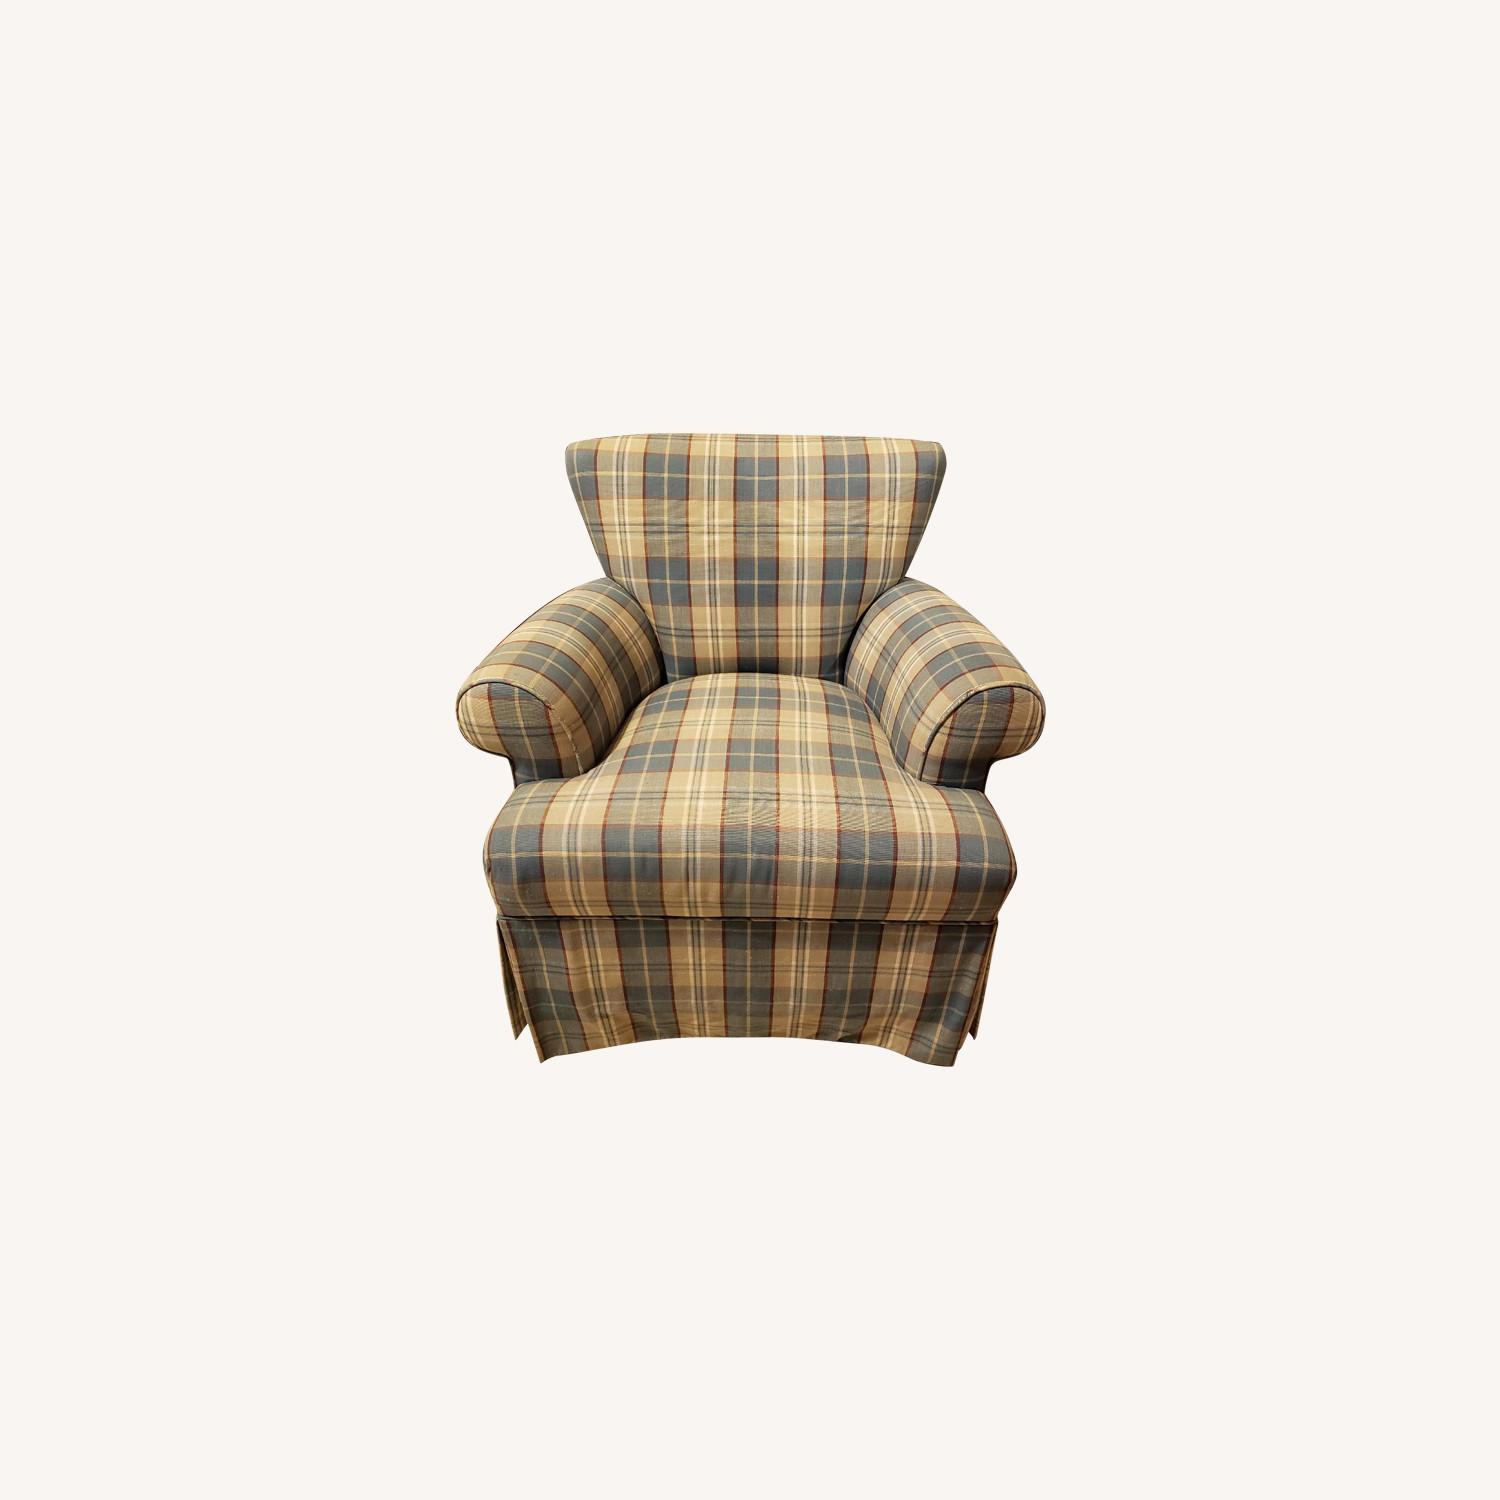 Plaid Accent Chair - image-0